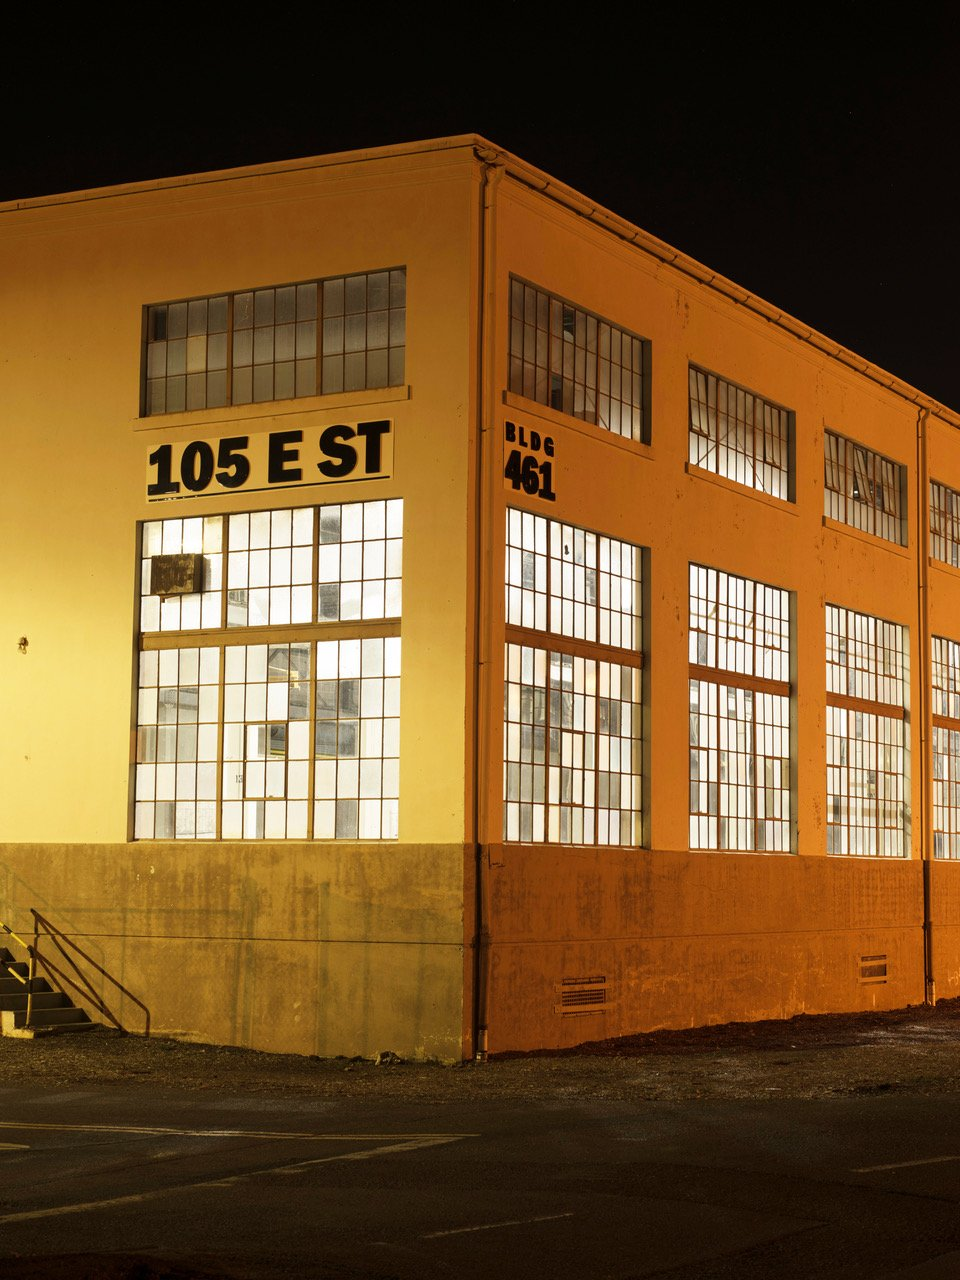 A building on Mare Island, once used by the U.S. Navy.